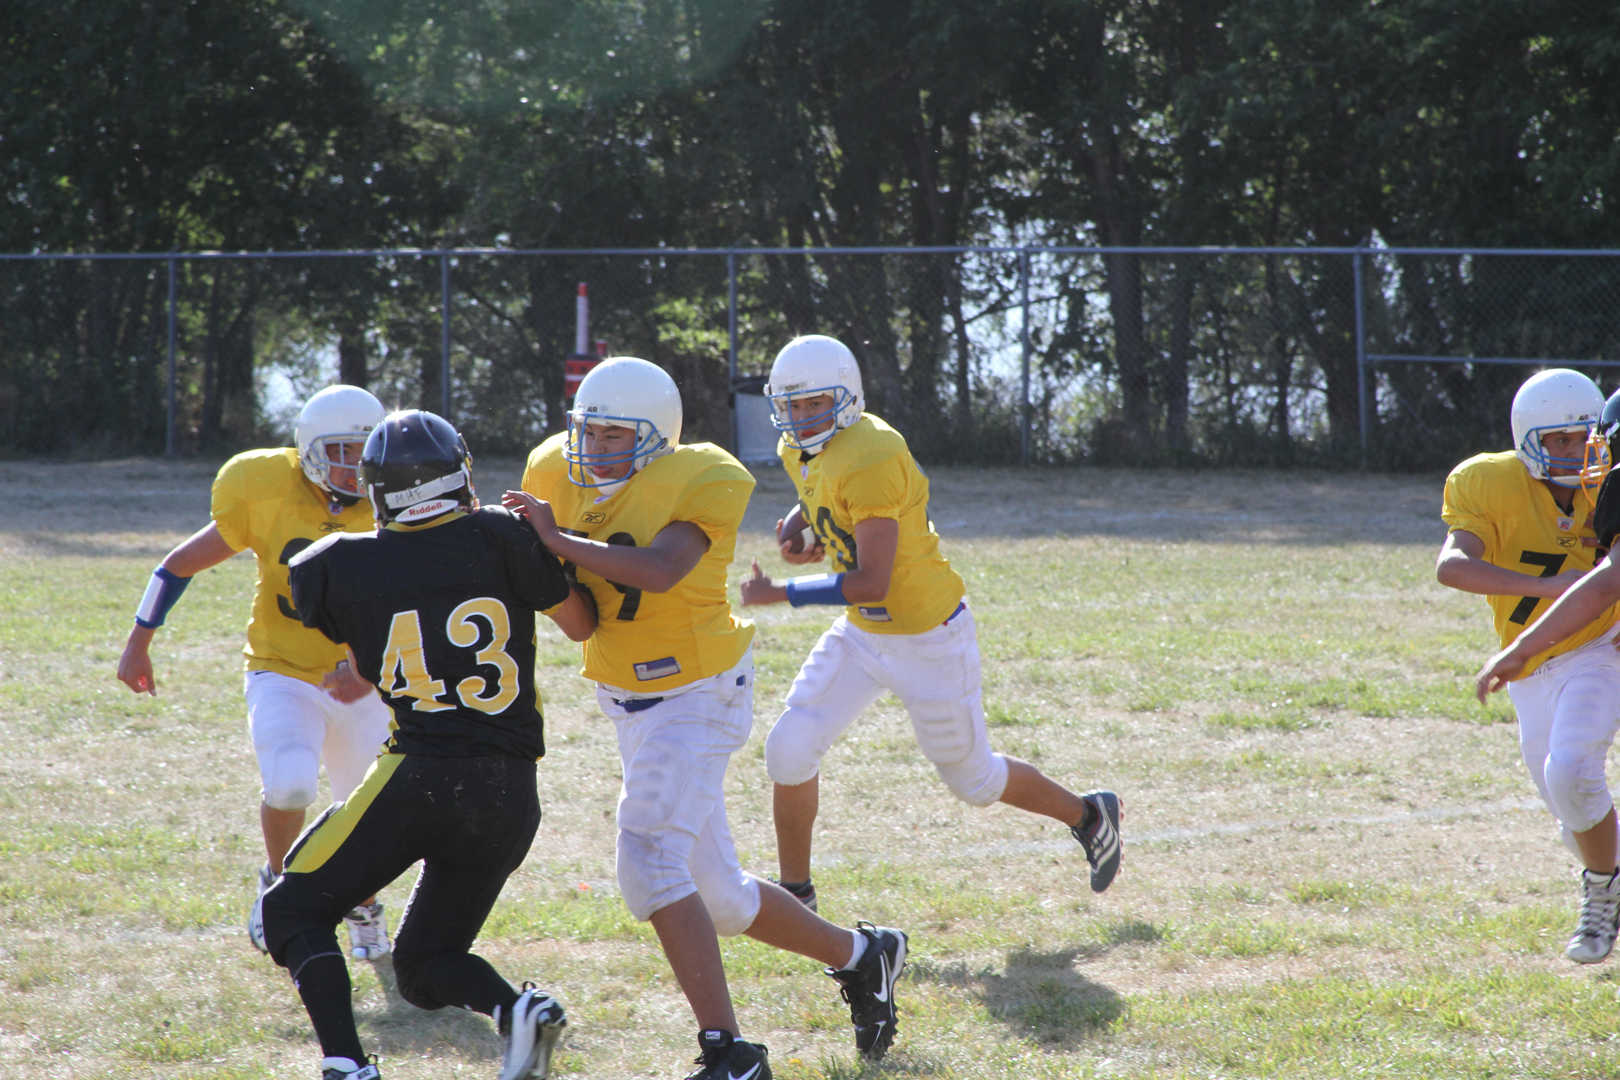 St. Joseph's Indian School's football team won 44-0!